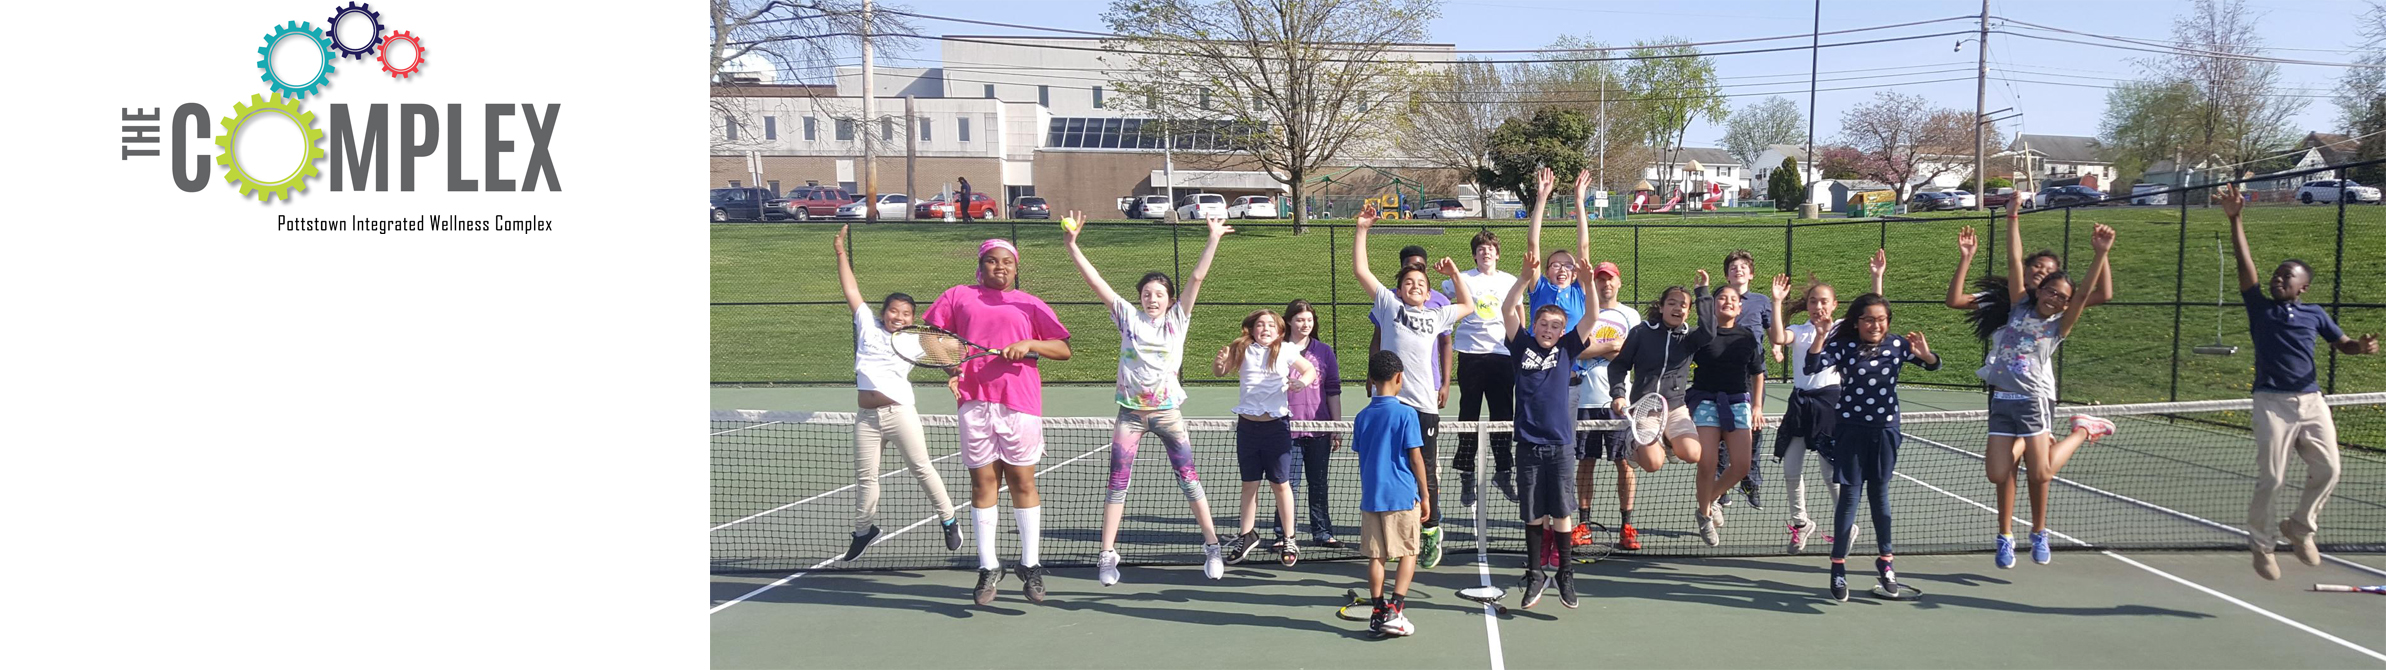 Tennis & Education at The Complex